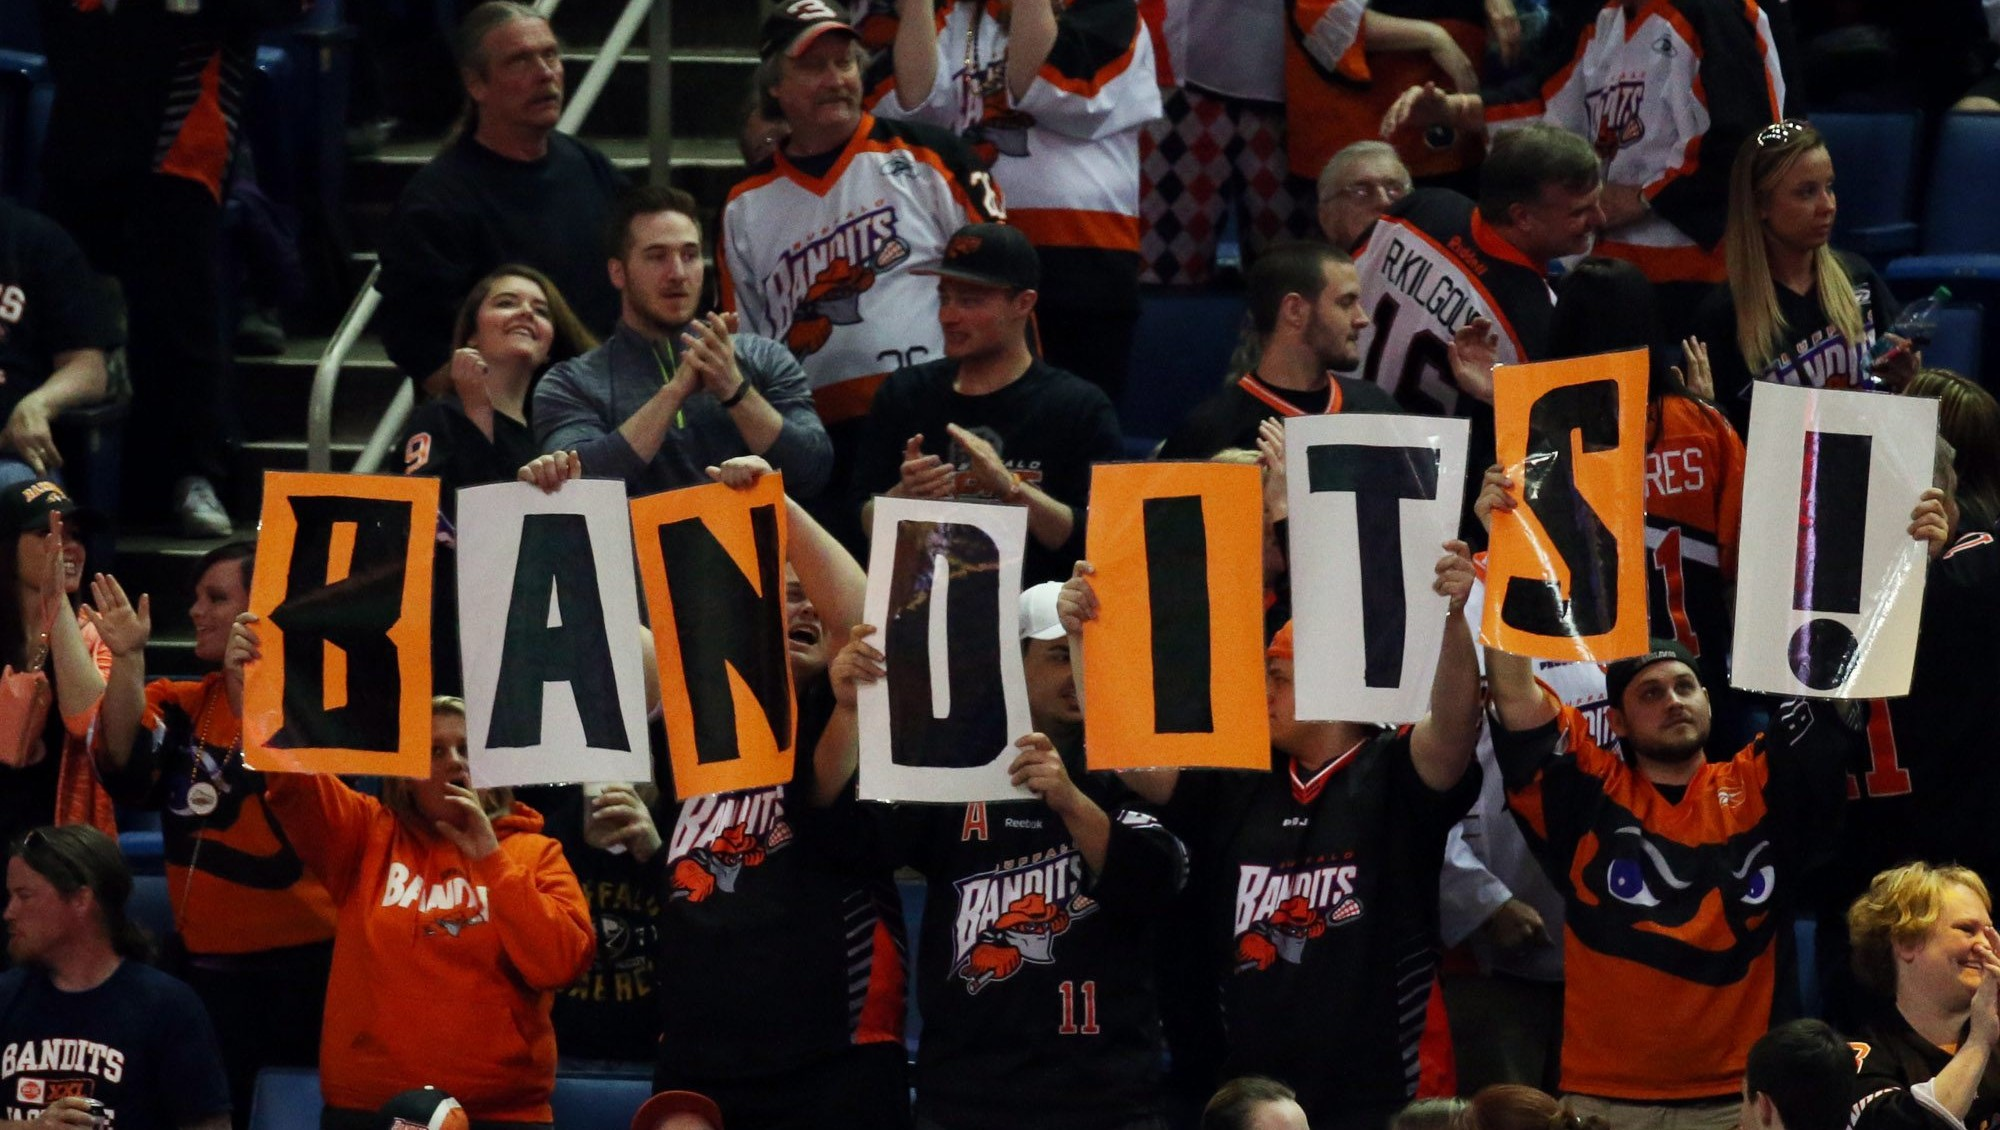 Bandits fans cheer on their team at KeyBank Center. (James P. McCoy/News file photo)